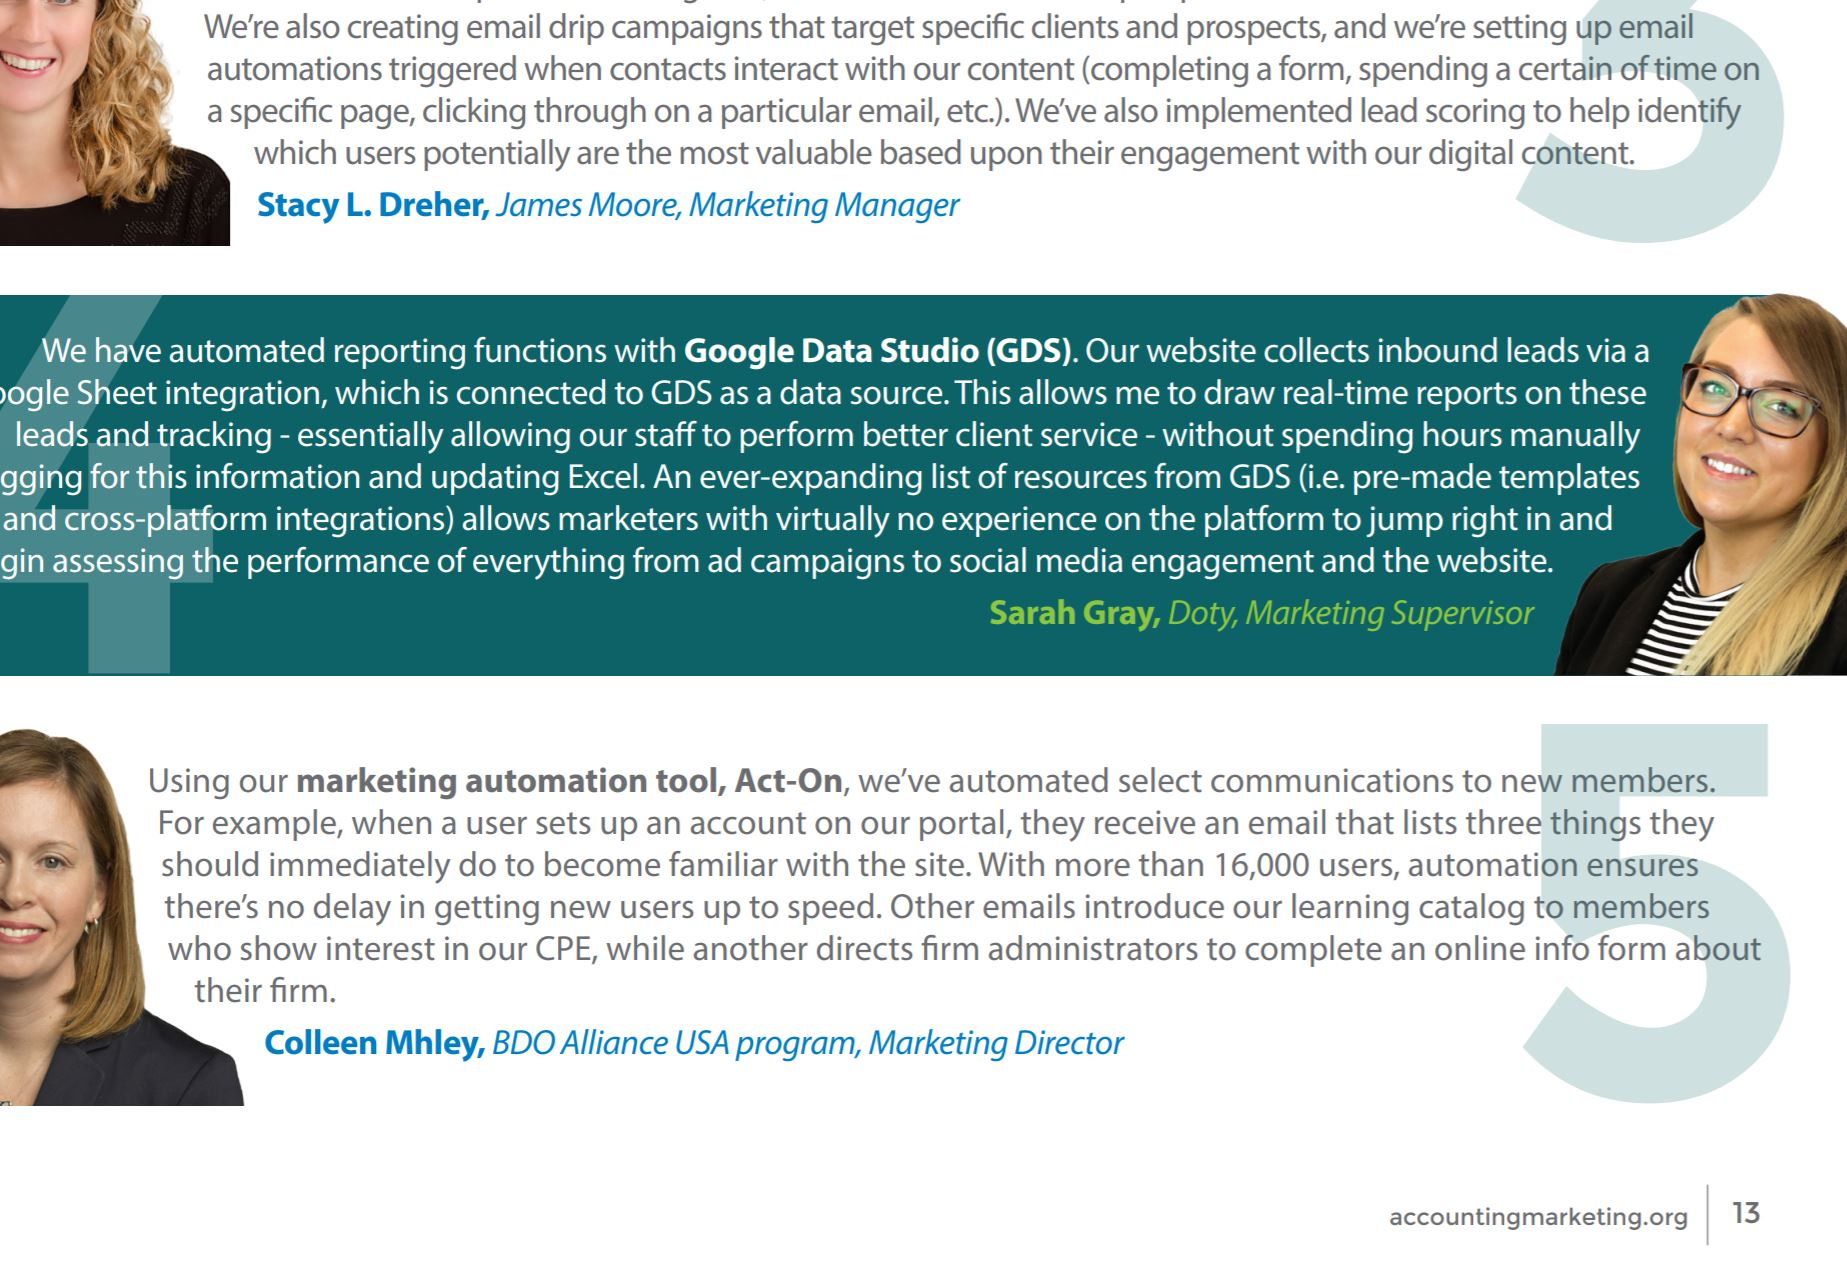 Association for Accounting Marketing Spring/Summer 2019 Growth Strategies issue on Automation,  Take 5 Feature